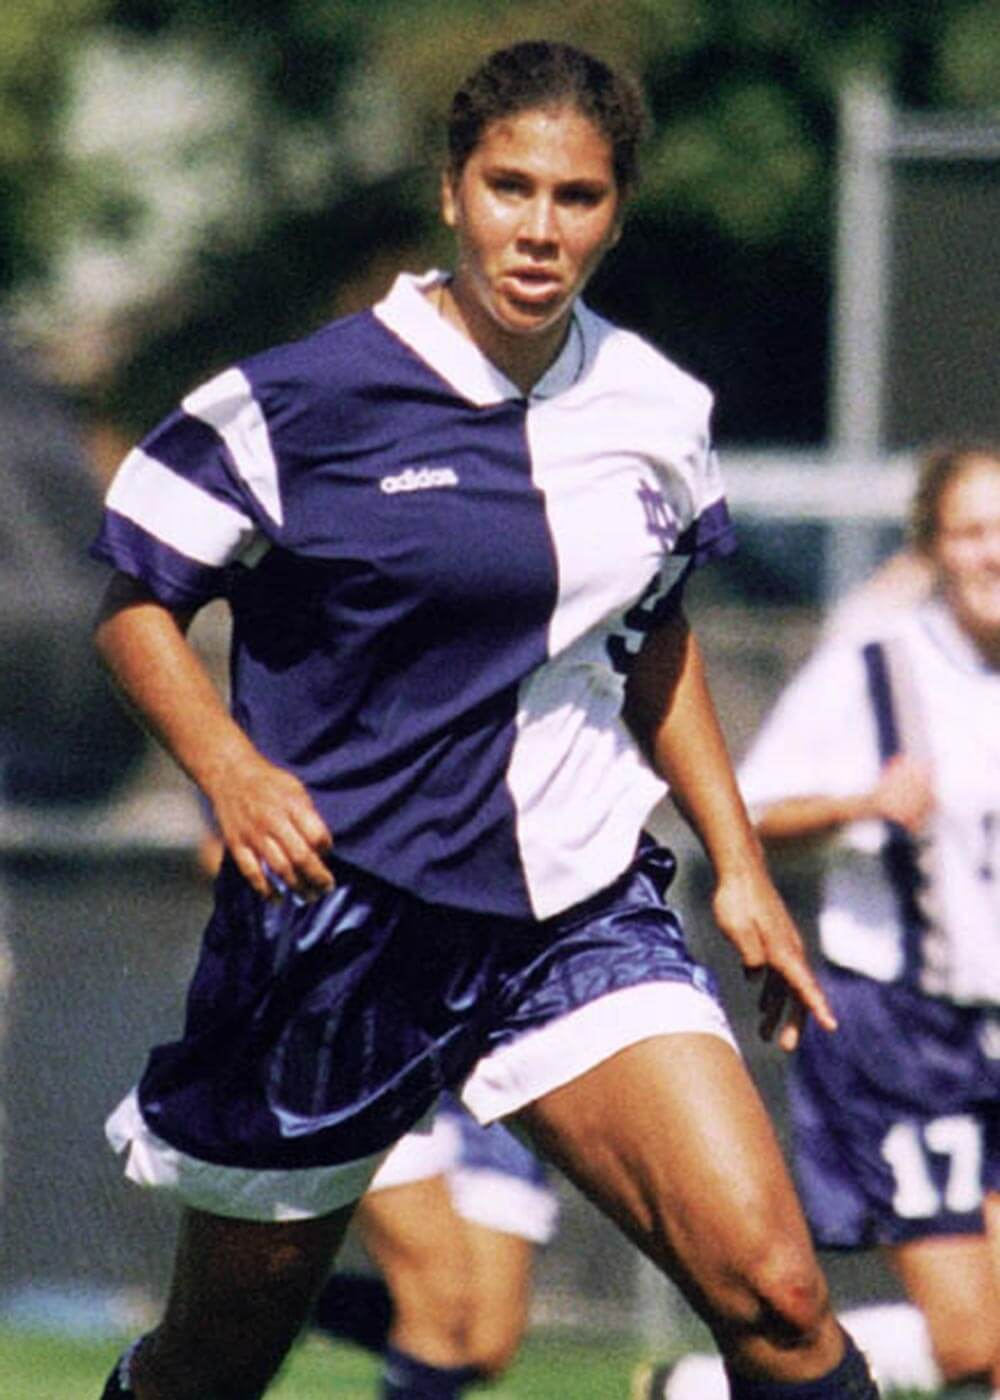 Women's Soccer wins first championship - 1995